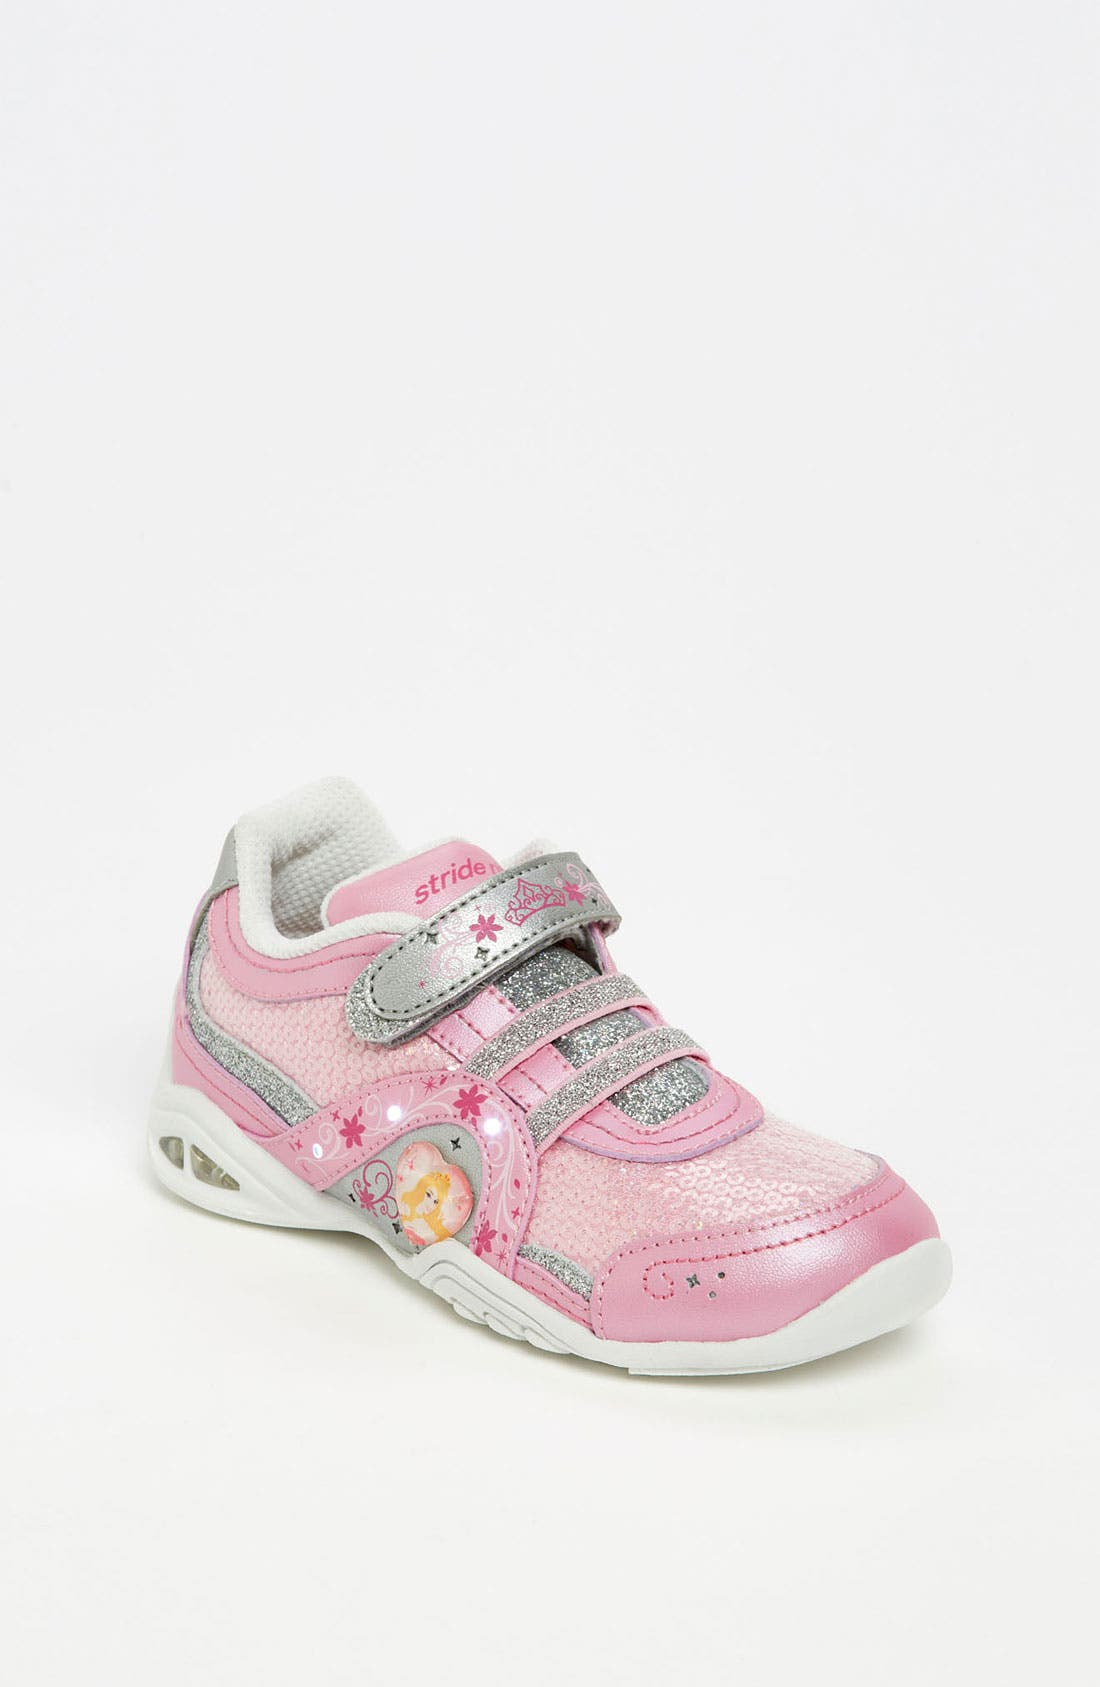 Main Image - Stride Rite 'Disney™ - Aurora' Sneaker (Toddler)